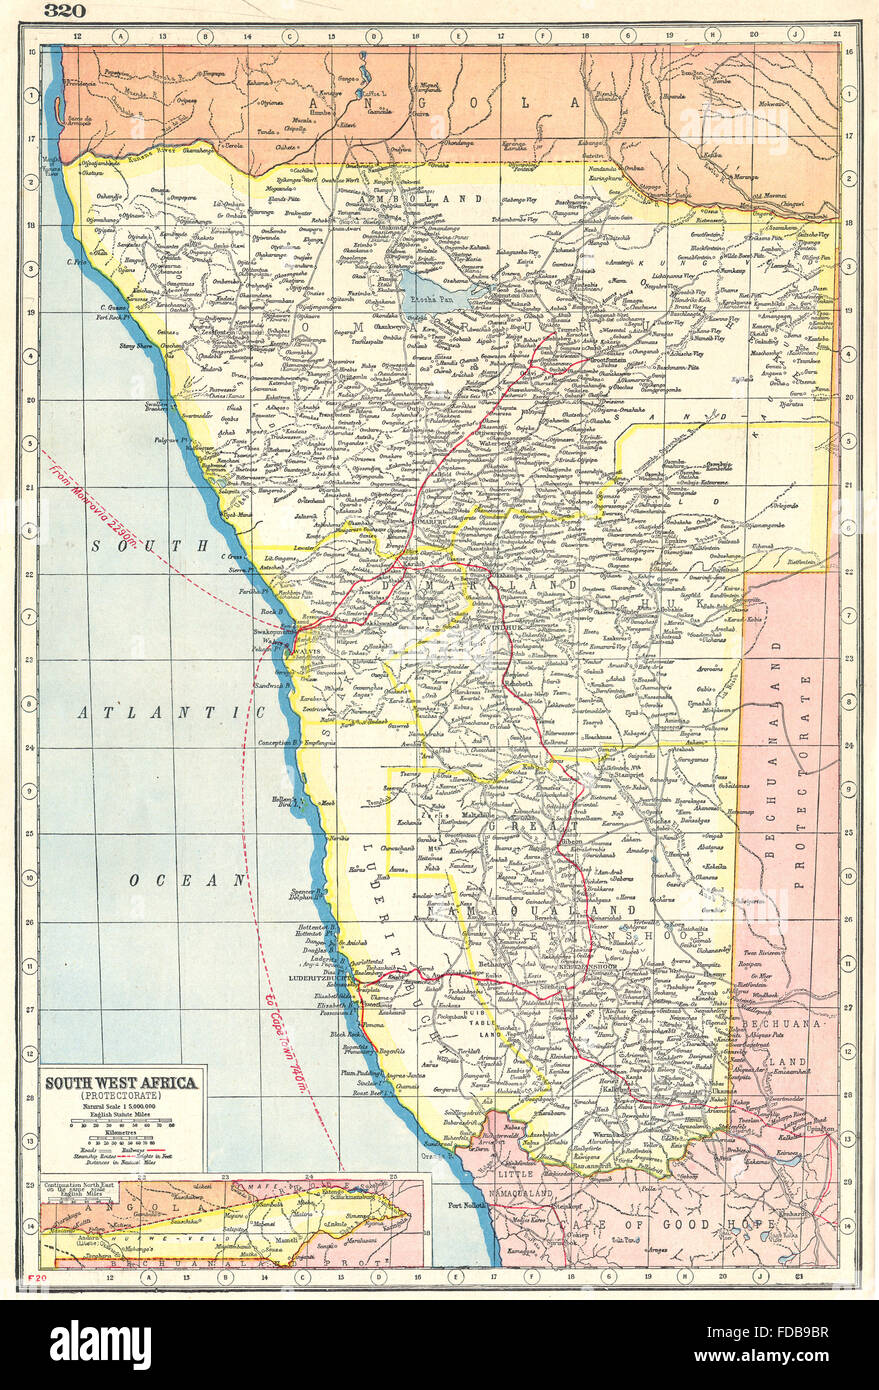 NAMIBIA: South West Africa protectorate. HARMSWORTH, 1920 vintage map - Stock Image